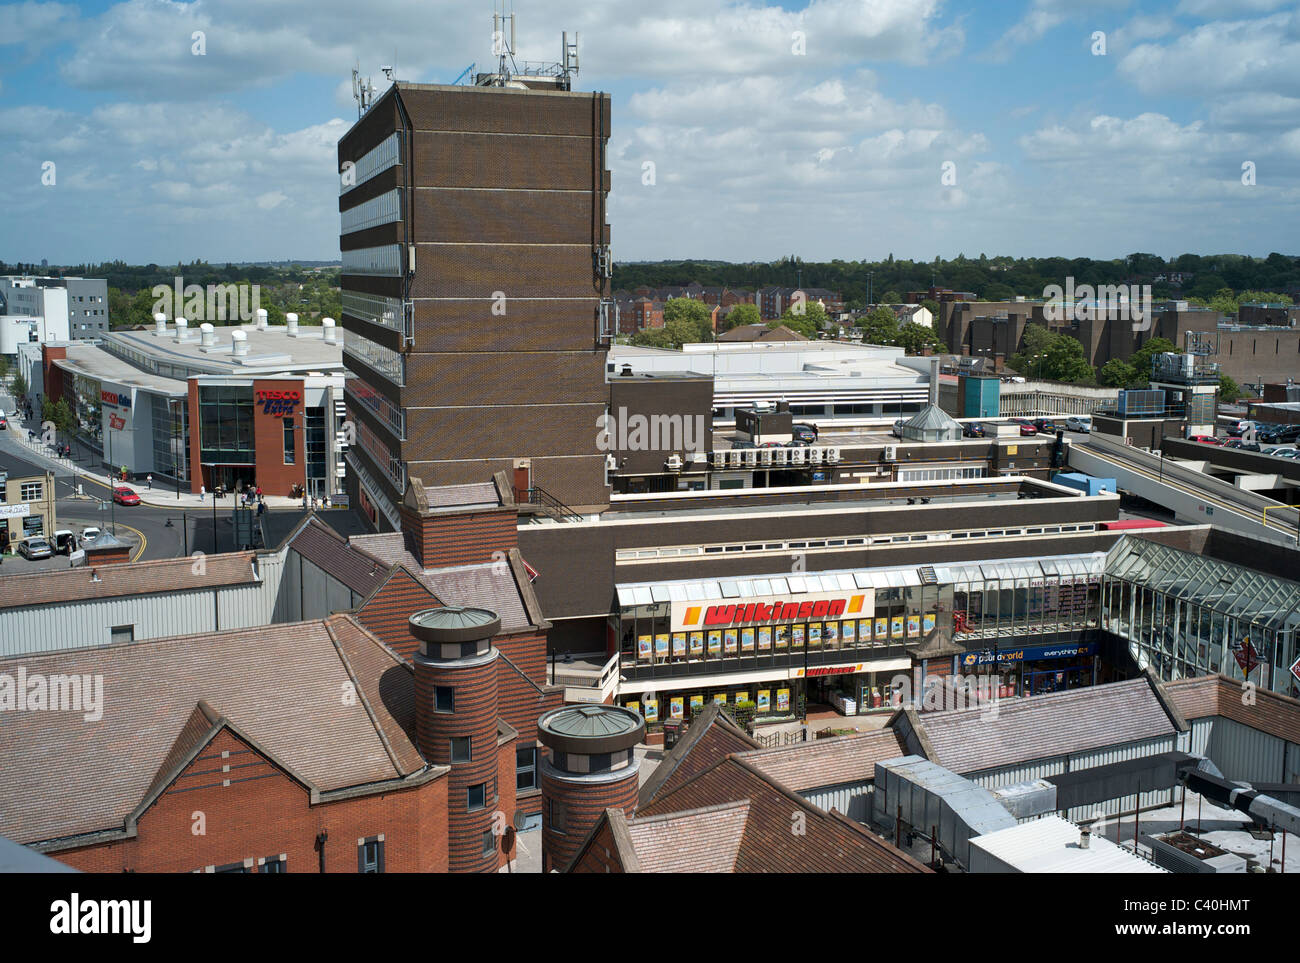 Walsall town centre. - Stock Image